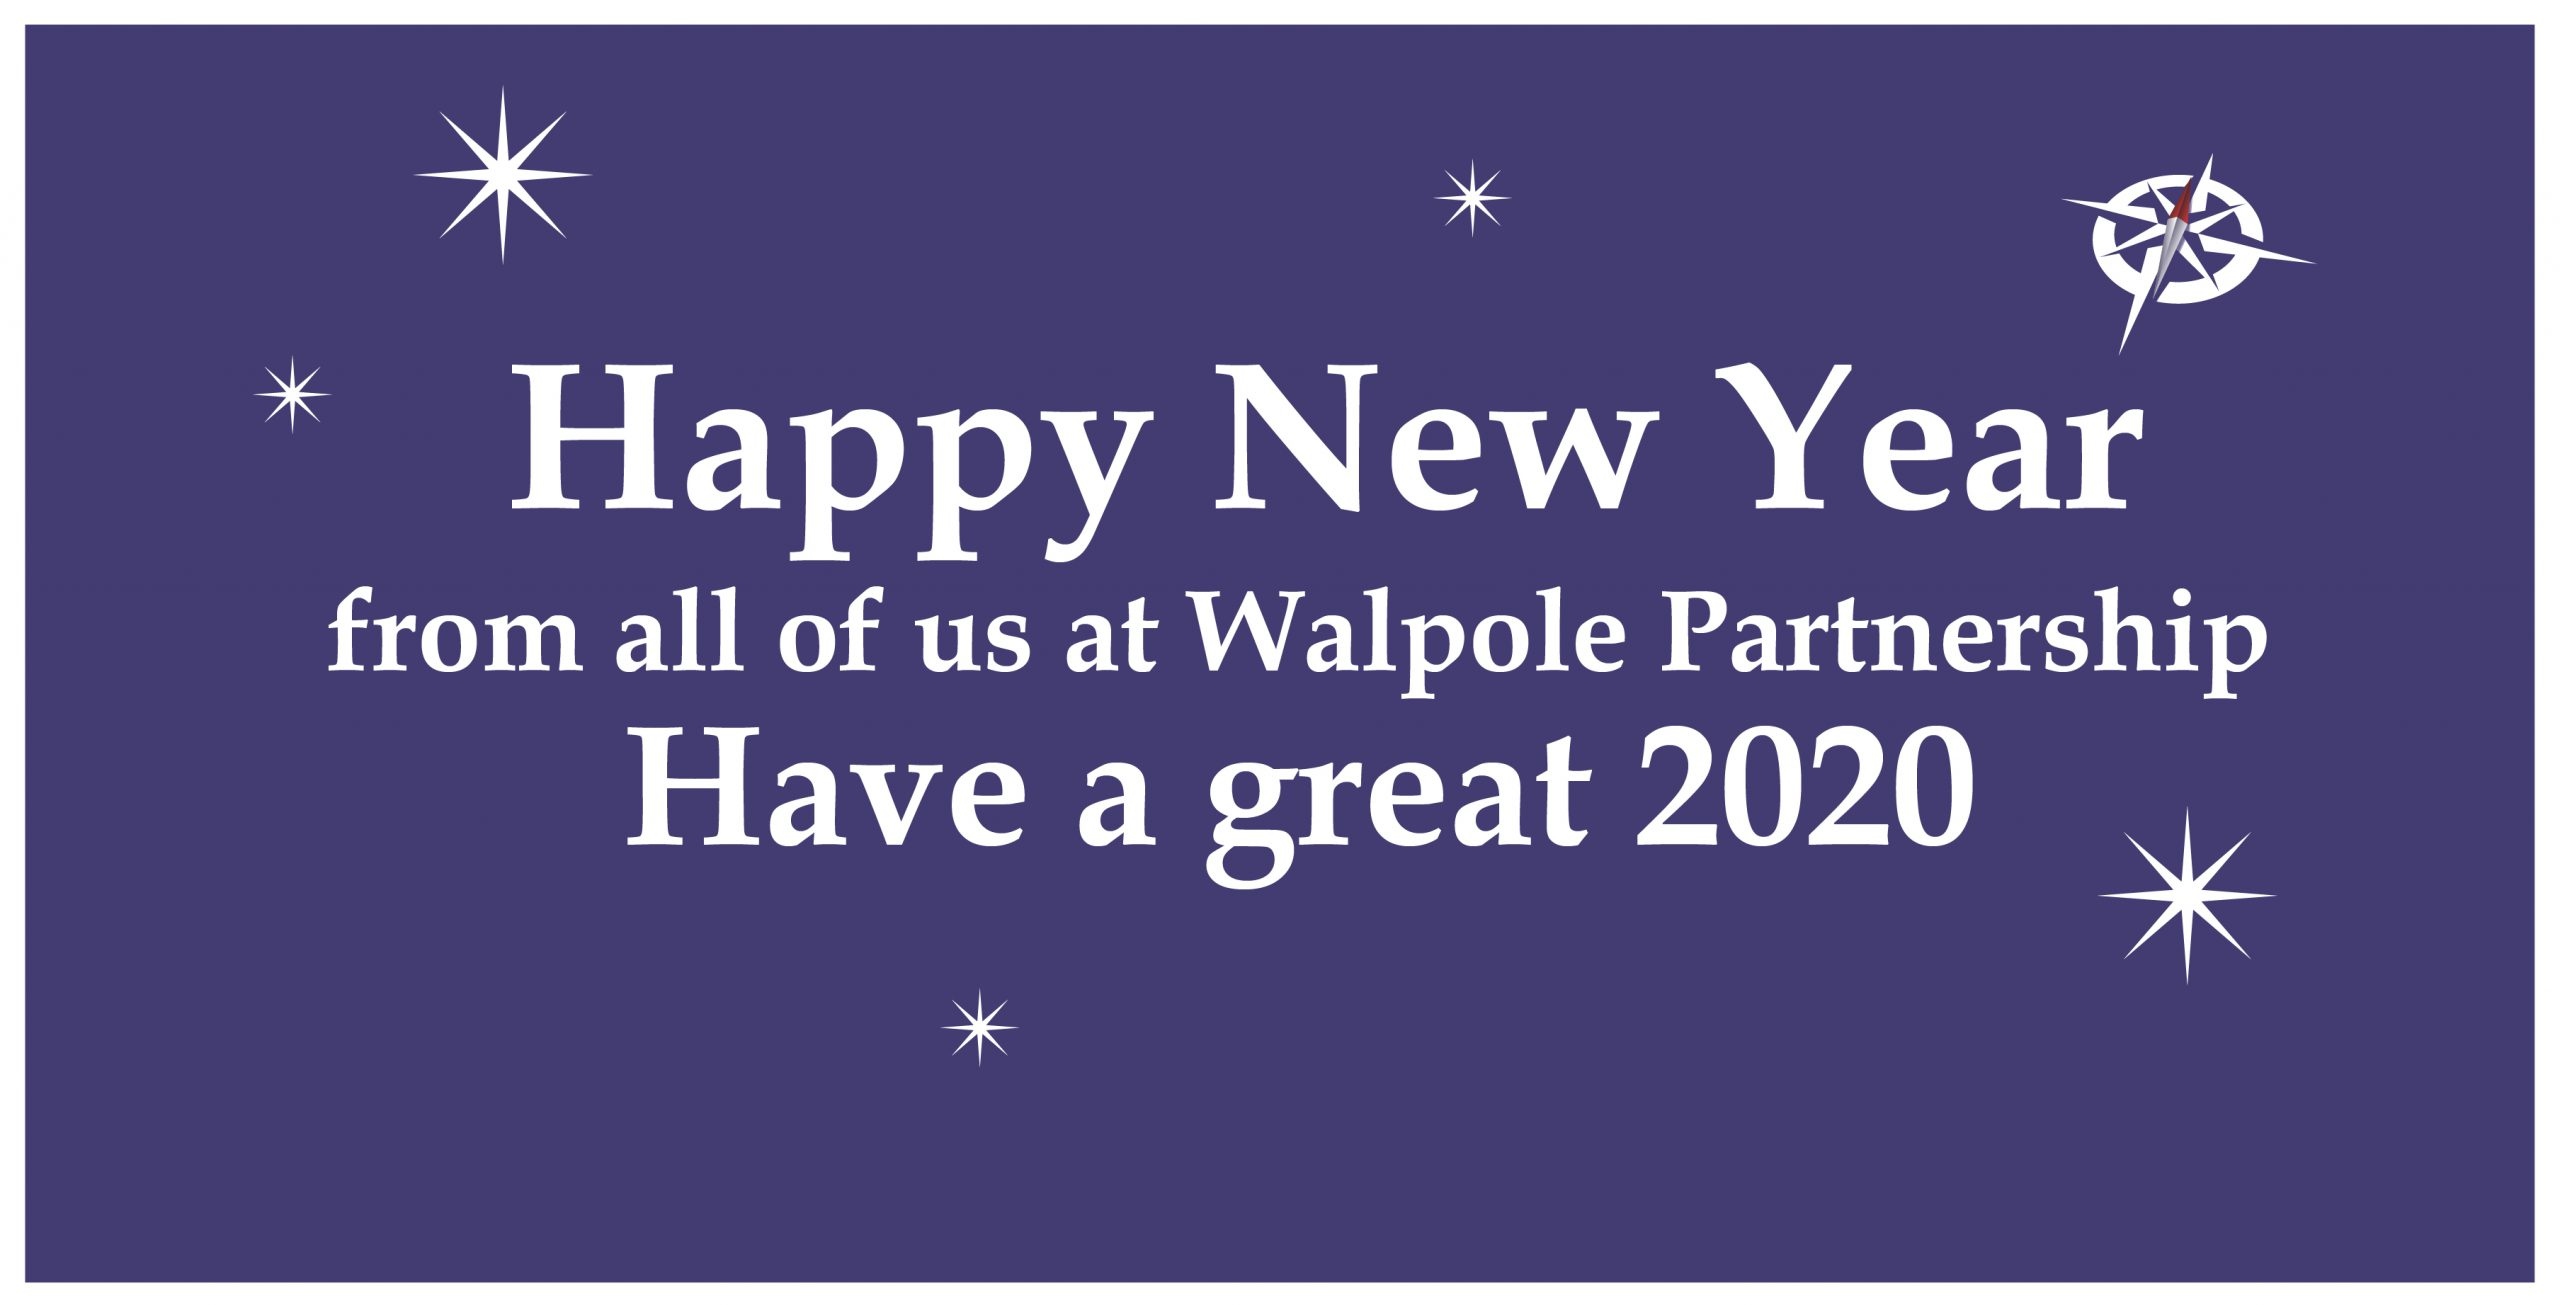 Happy New Year from Walpole Partnership